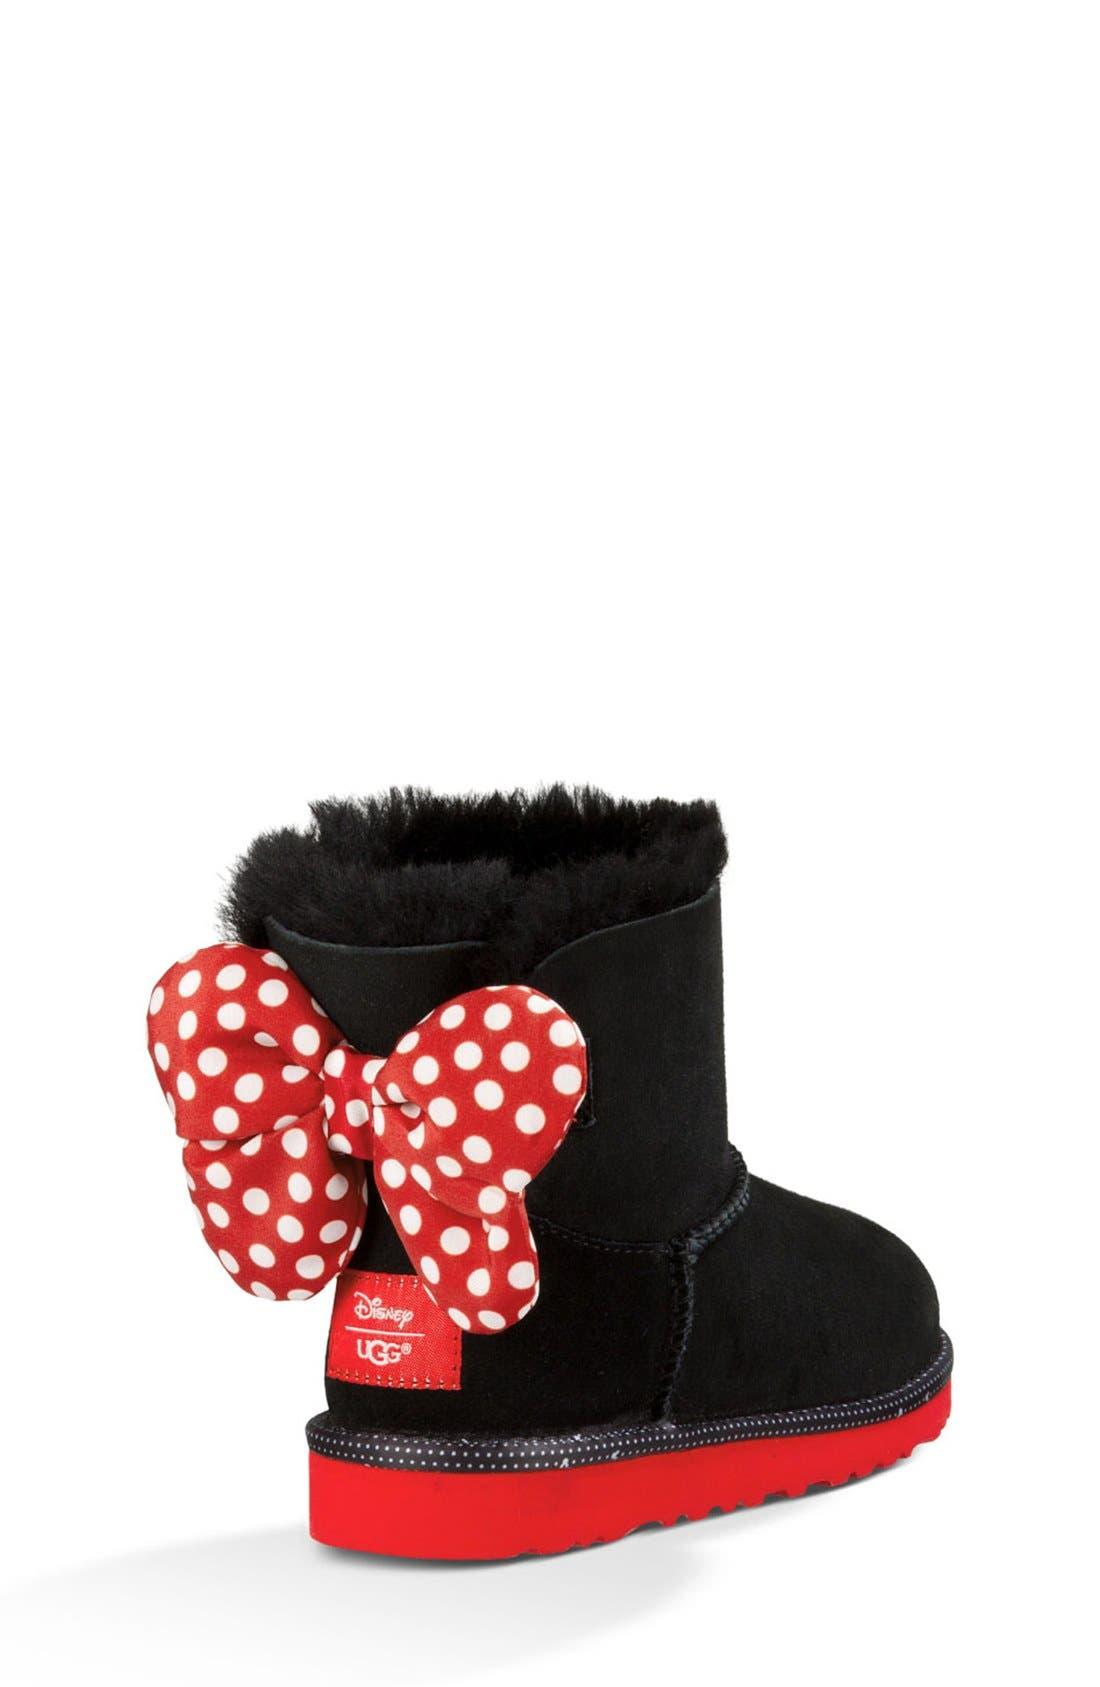 Disney<sup>®</sup> 'Sweetie Bow' Boot,                             Alternate thumbnail 3, color,                             001